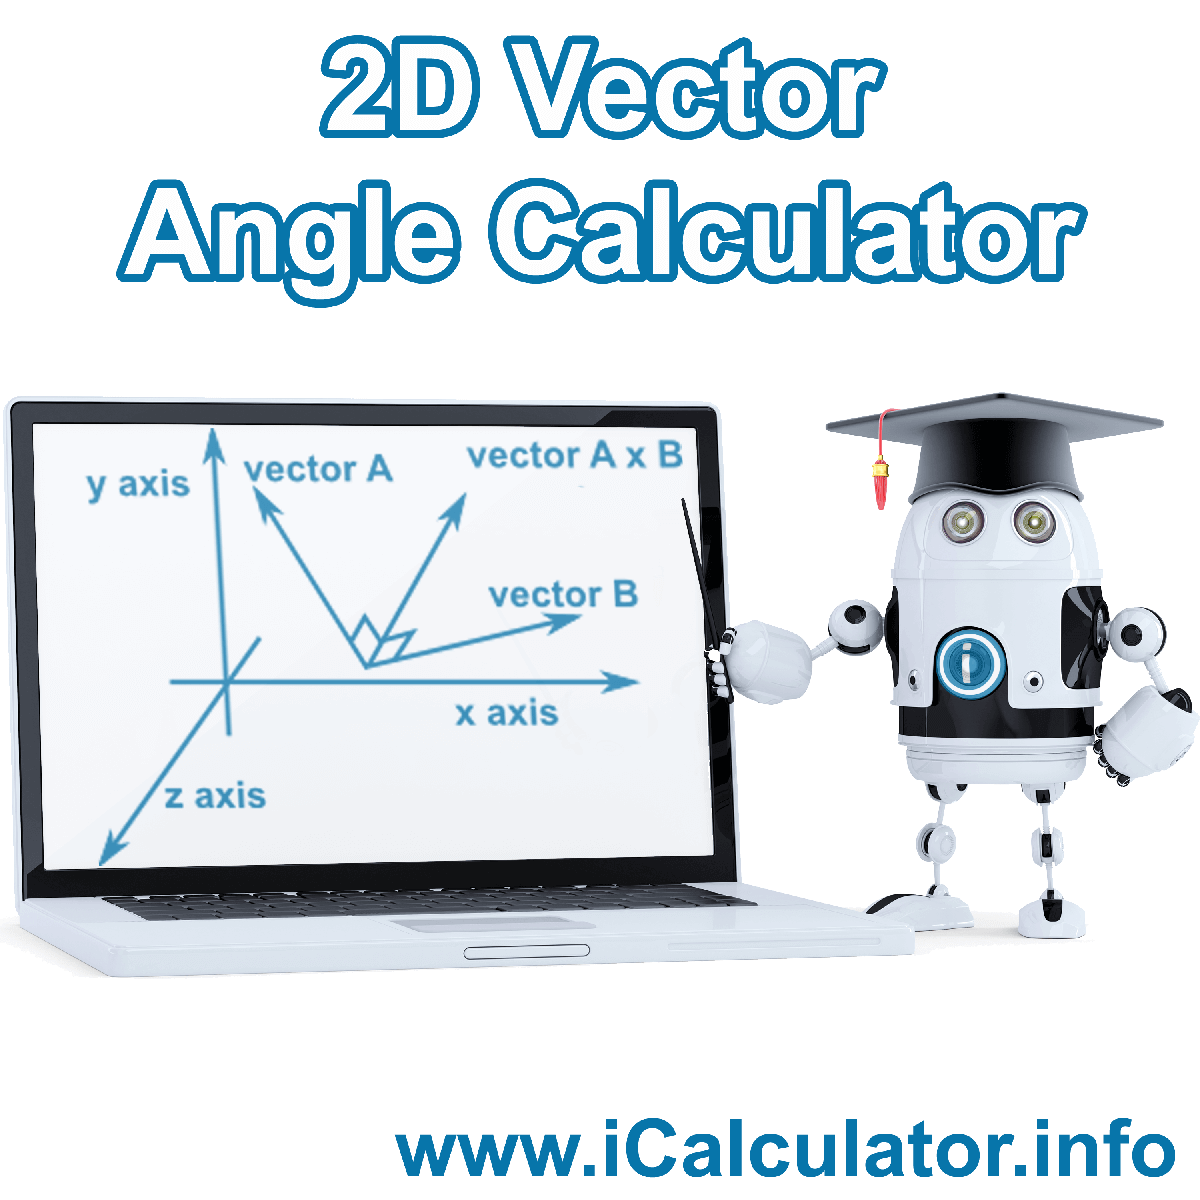 2D Vector Angle Calculator. This image shows 2D Vector Angle formula with associated calculations used by the 2D Vector Angle Calculator